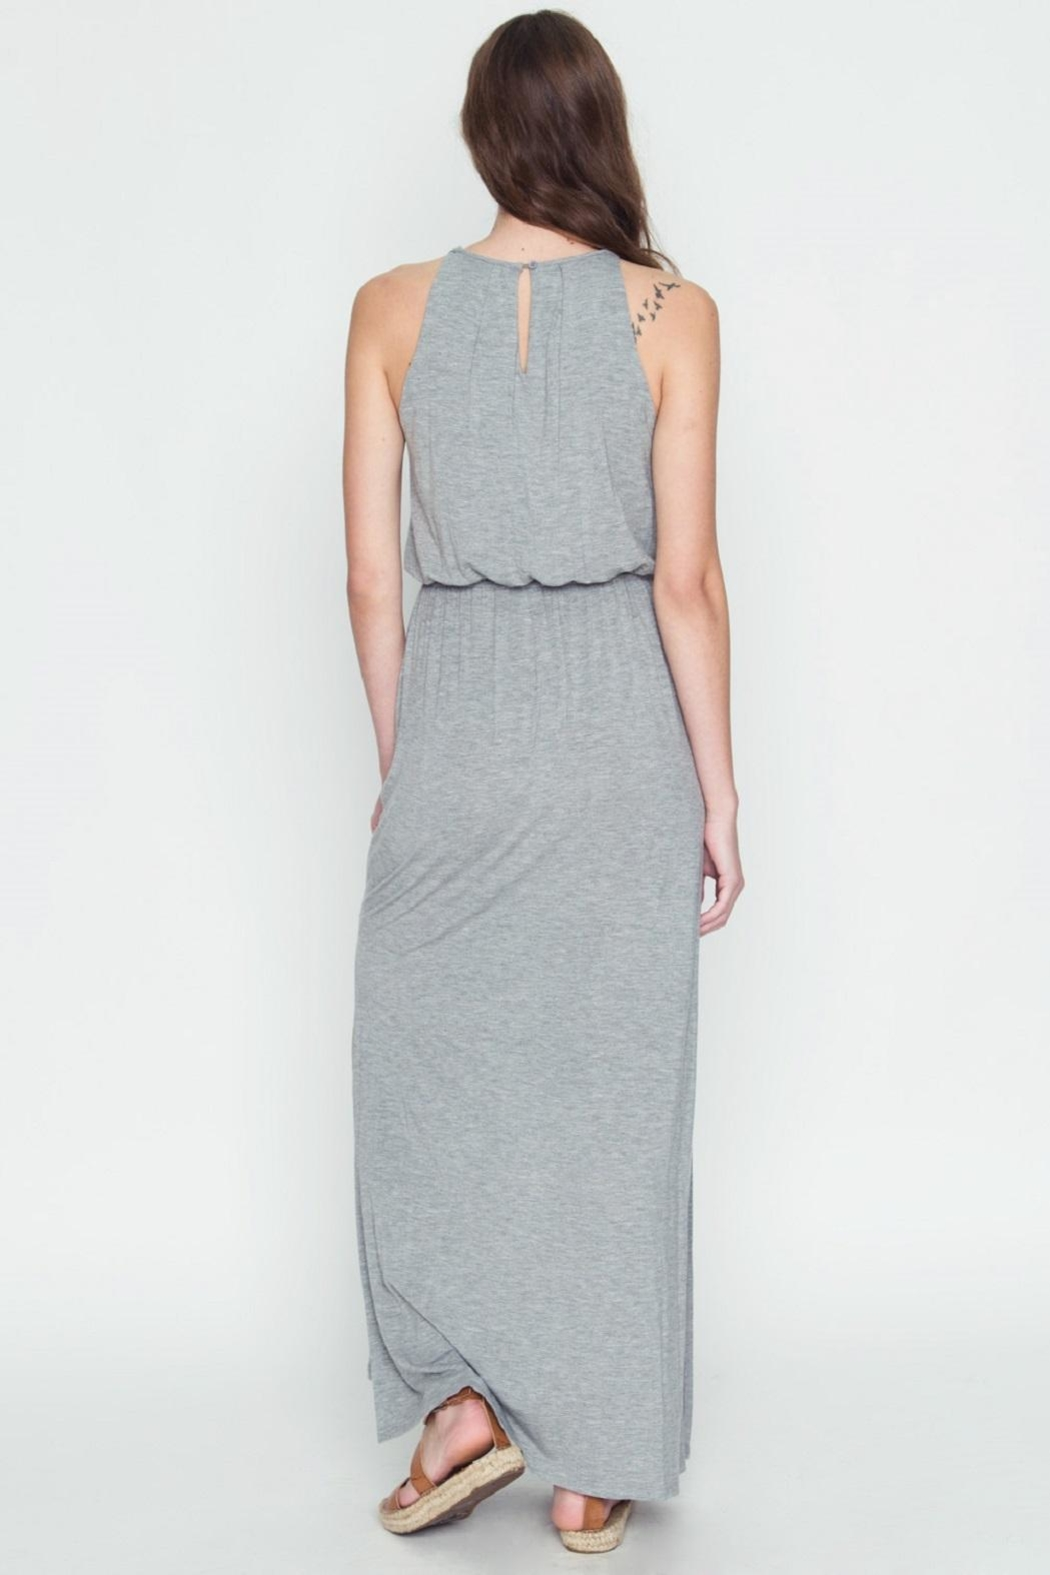 LoveRiche Halter Maxi Dress - Back Cropped Image